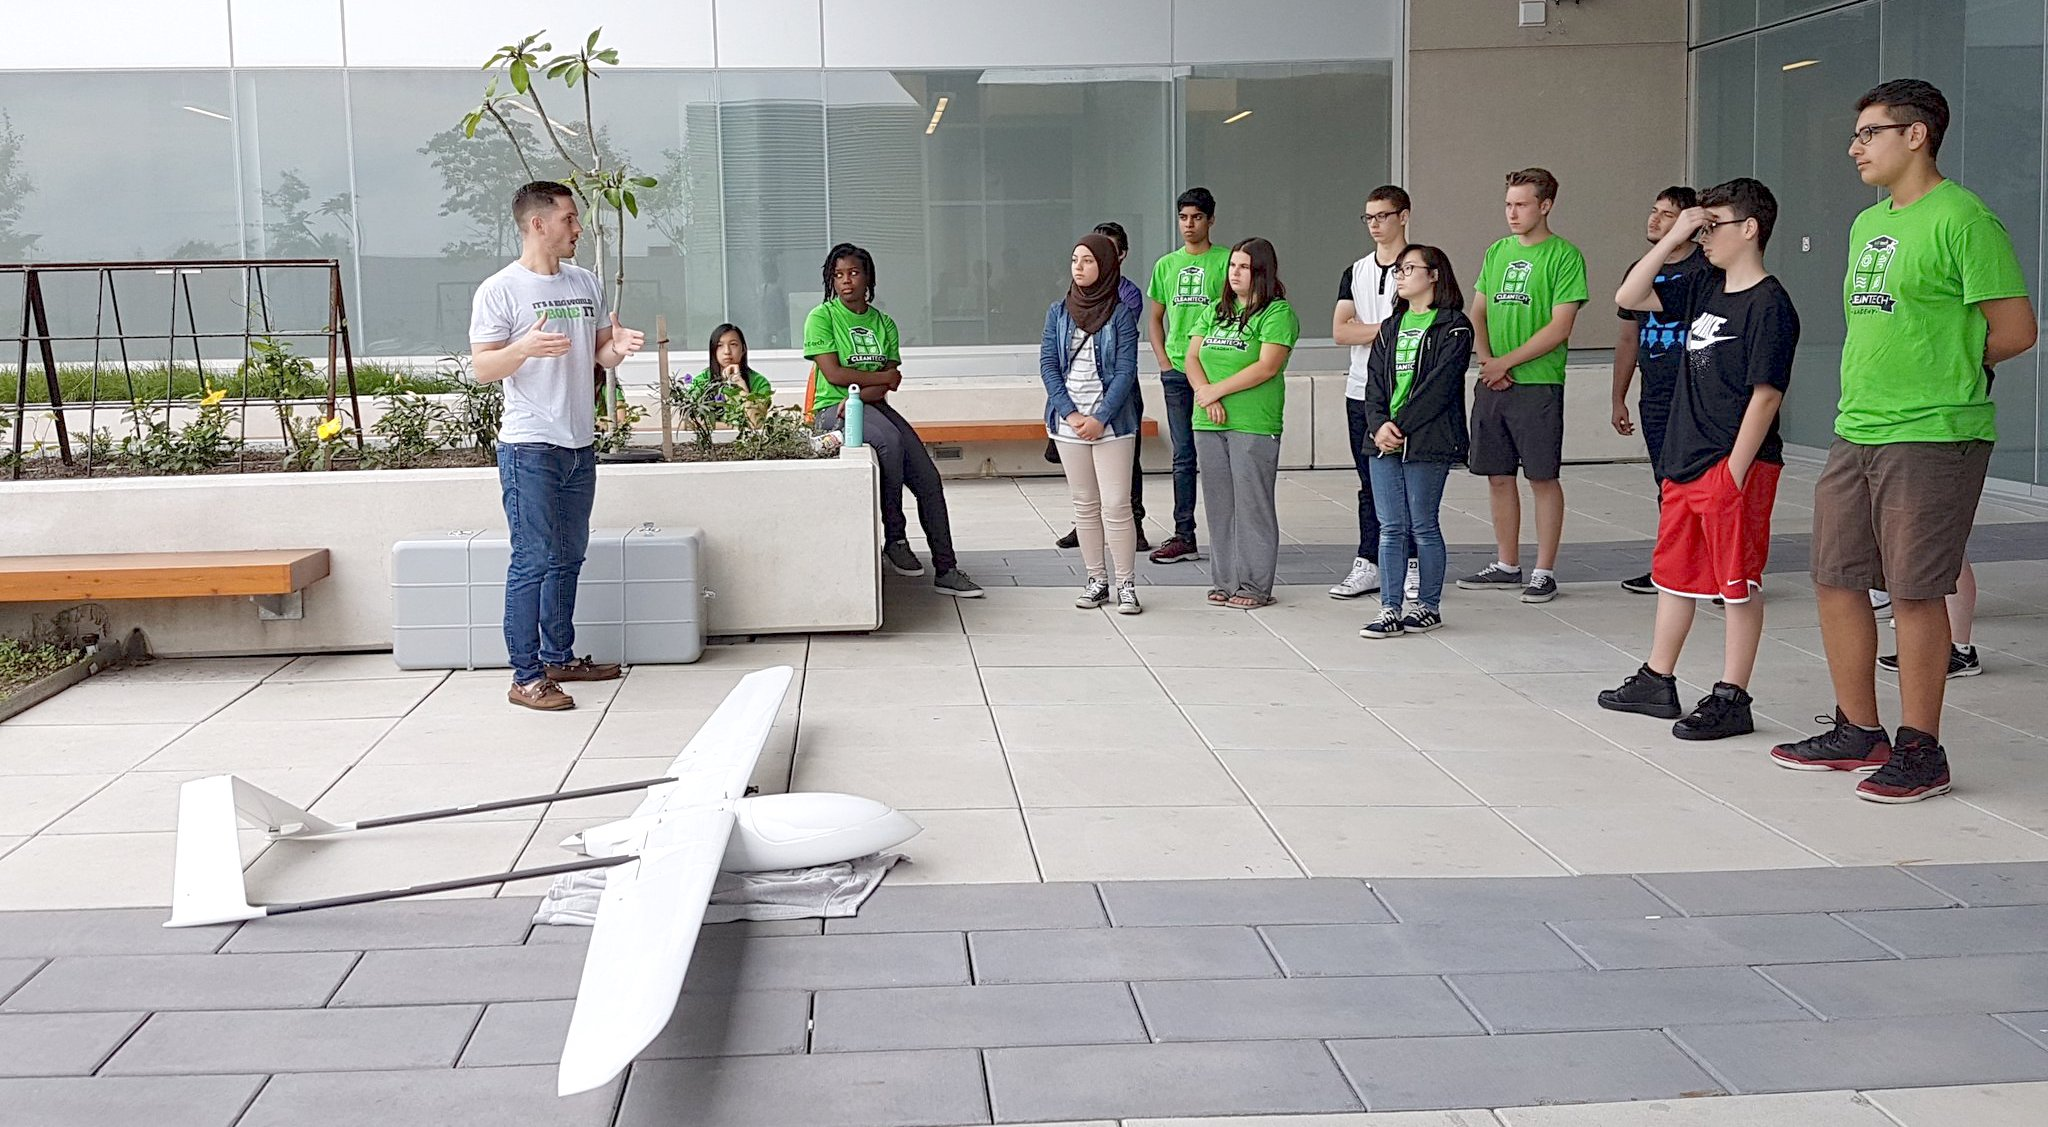 Ryan Cant of Envirodrone presenting to the students of CleanTech academy.